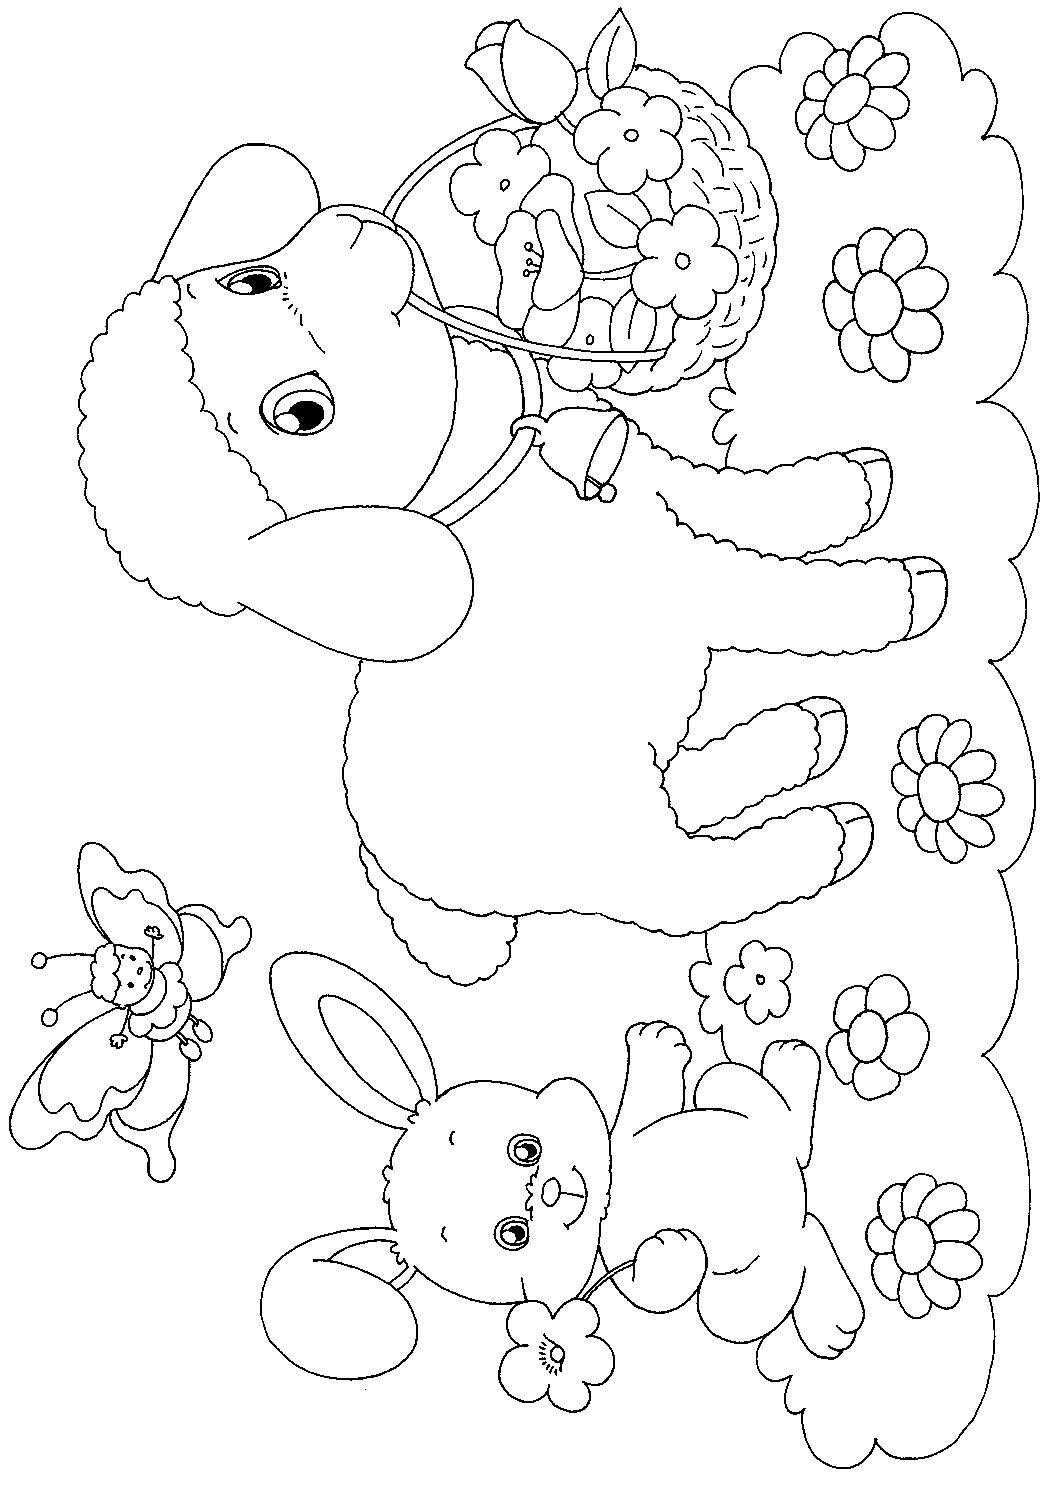 Easter Lamb Coloring Pages Free 7 D Spring Coloring Pages Bunny Coloring Pages Easter Coloring Pages